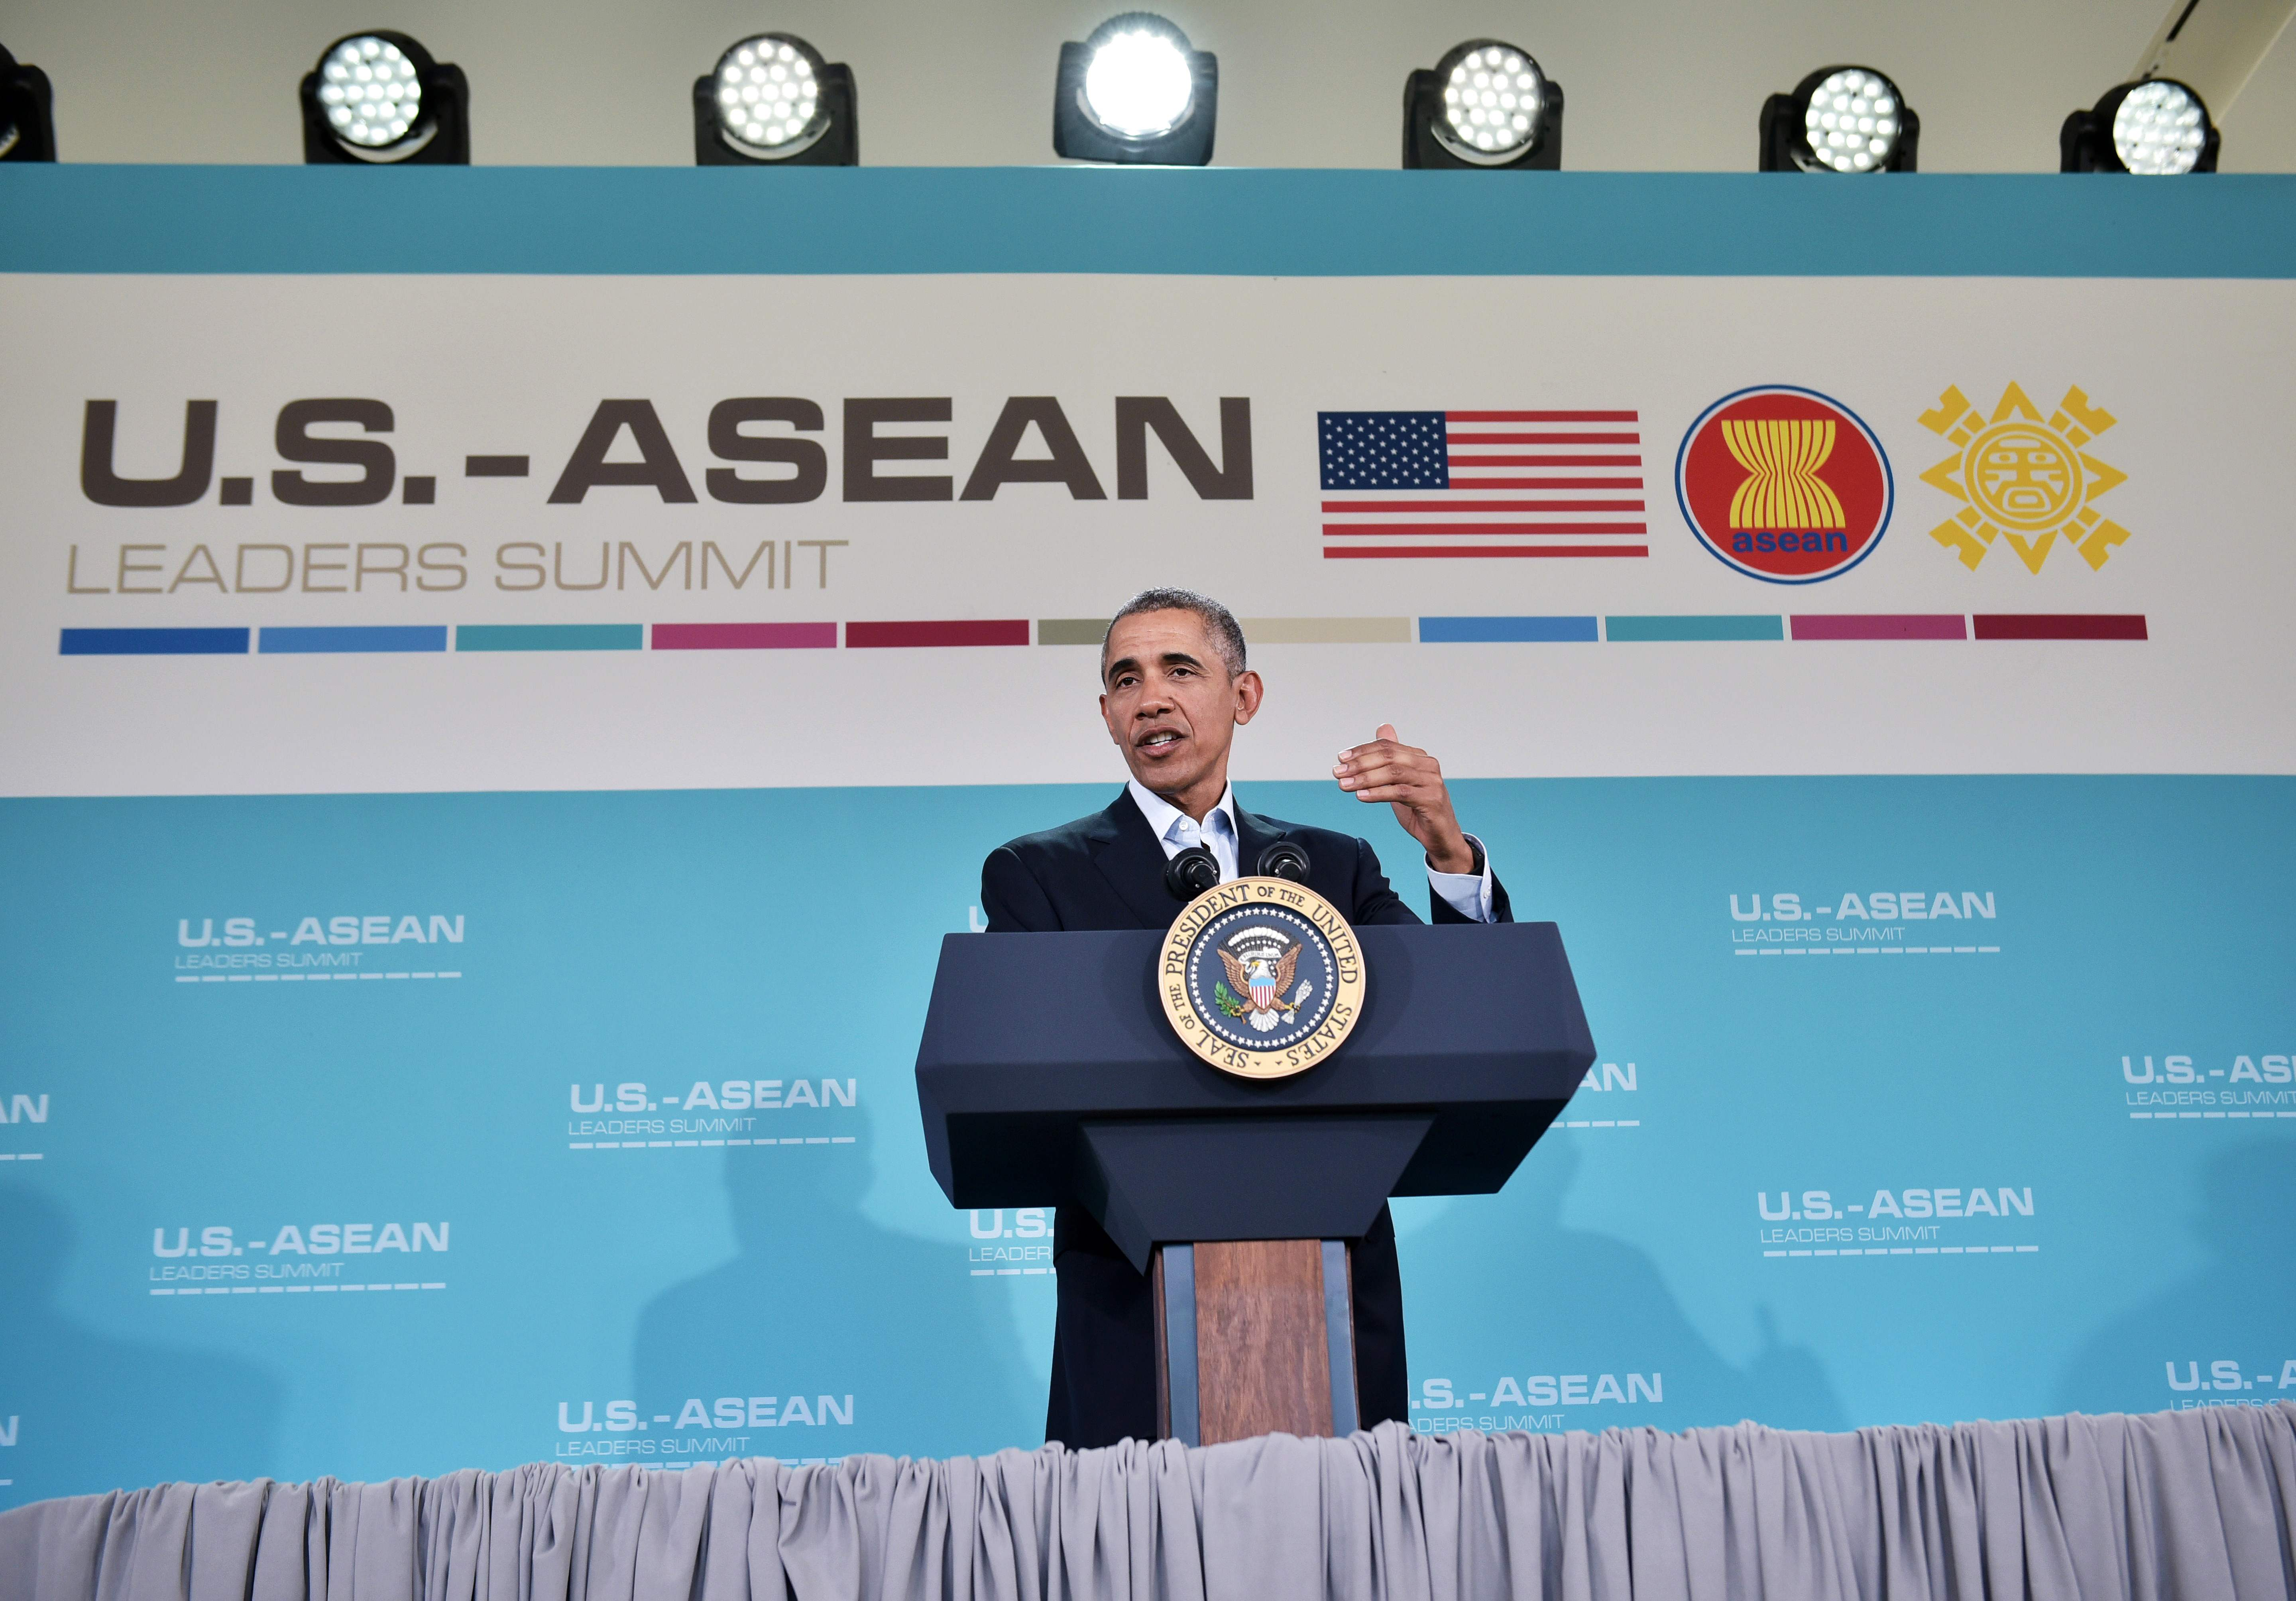 US President Barack Obama speaks during a press conference following a meeting of the Association of Southeast Asian Nations (ASEAN) at the Sunnylands estate on February 16, 2016 in Rancho Mirage, California. / AFP / Mandel Ngan